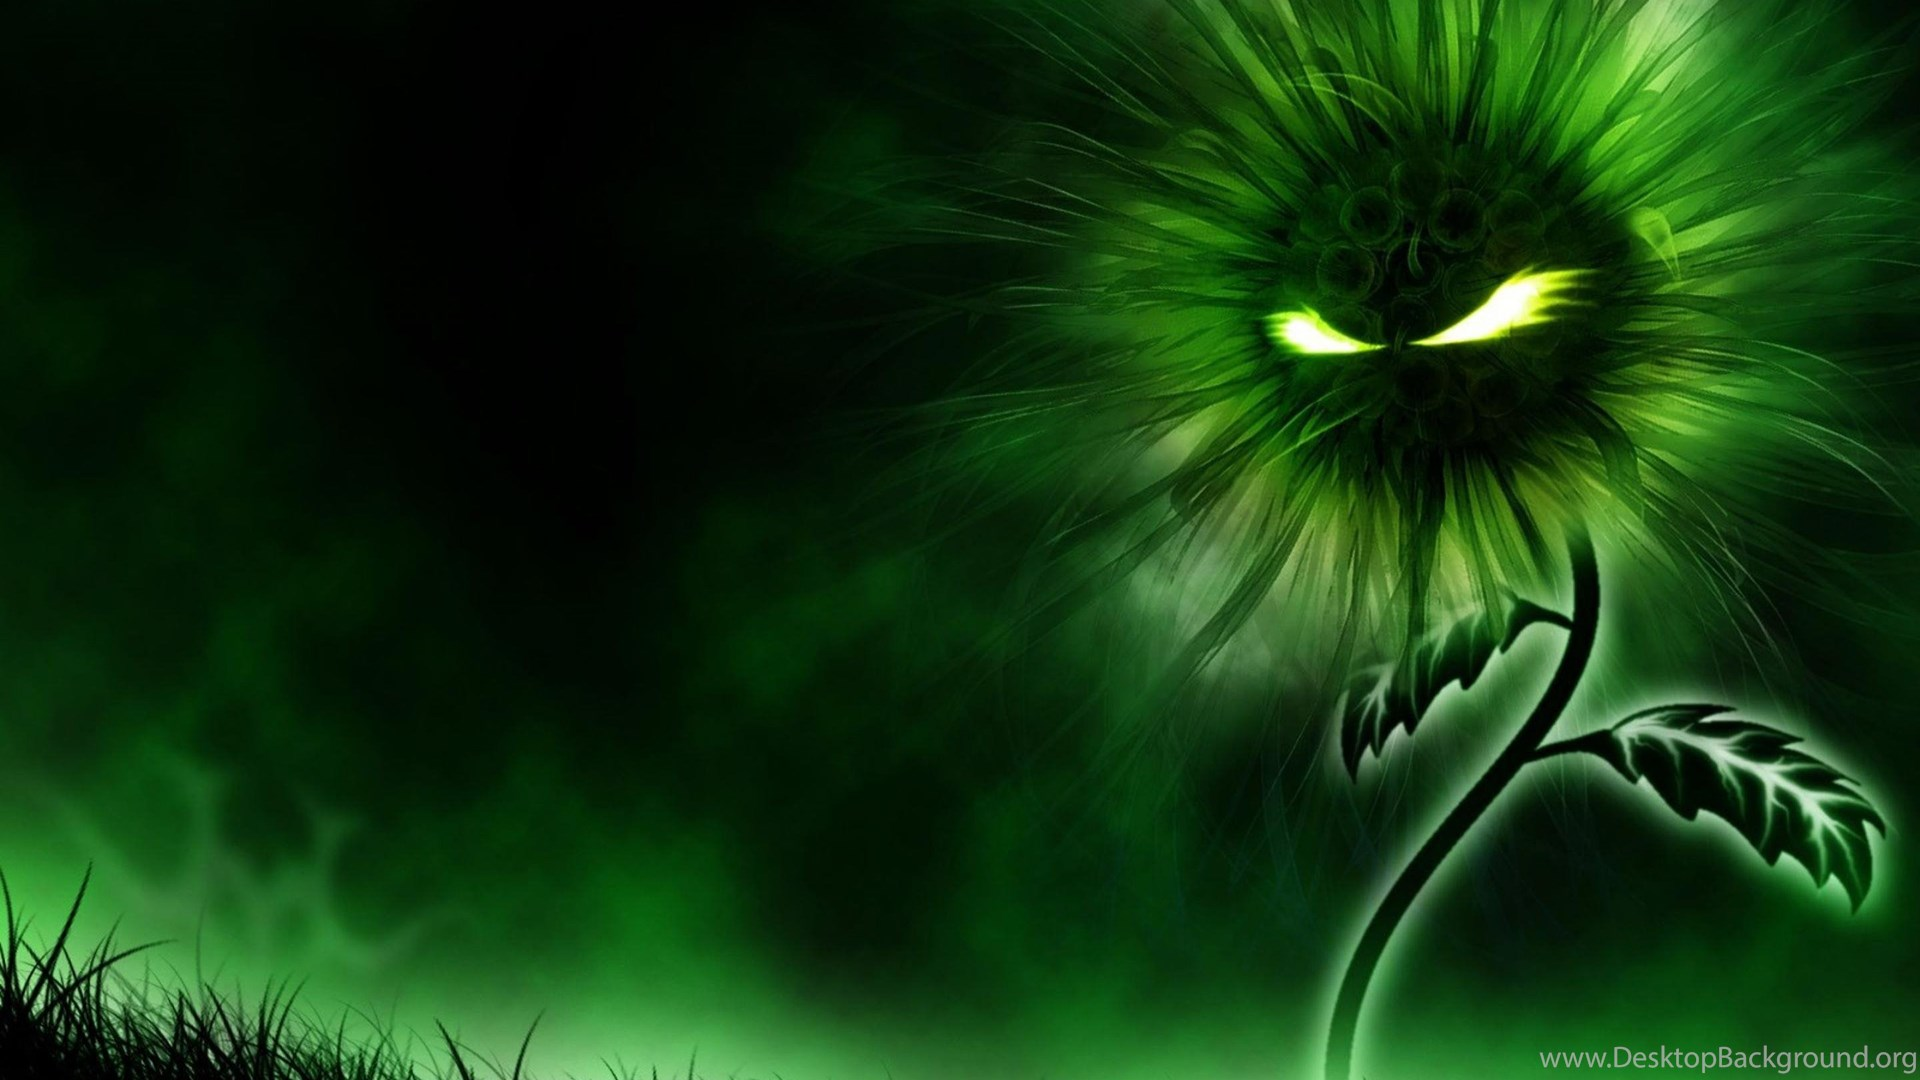 High Resolution Abstract Wallpaper: Green High Quality Resolution Wallpapers : Abstract